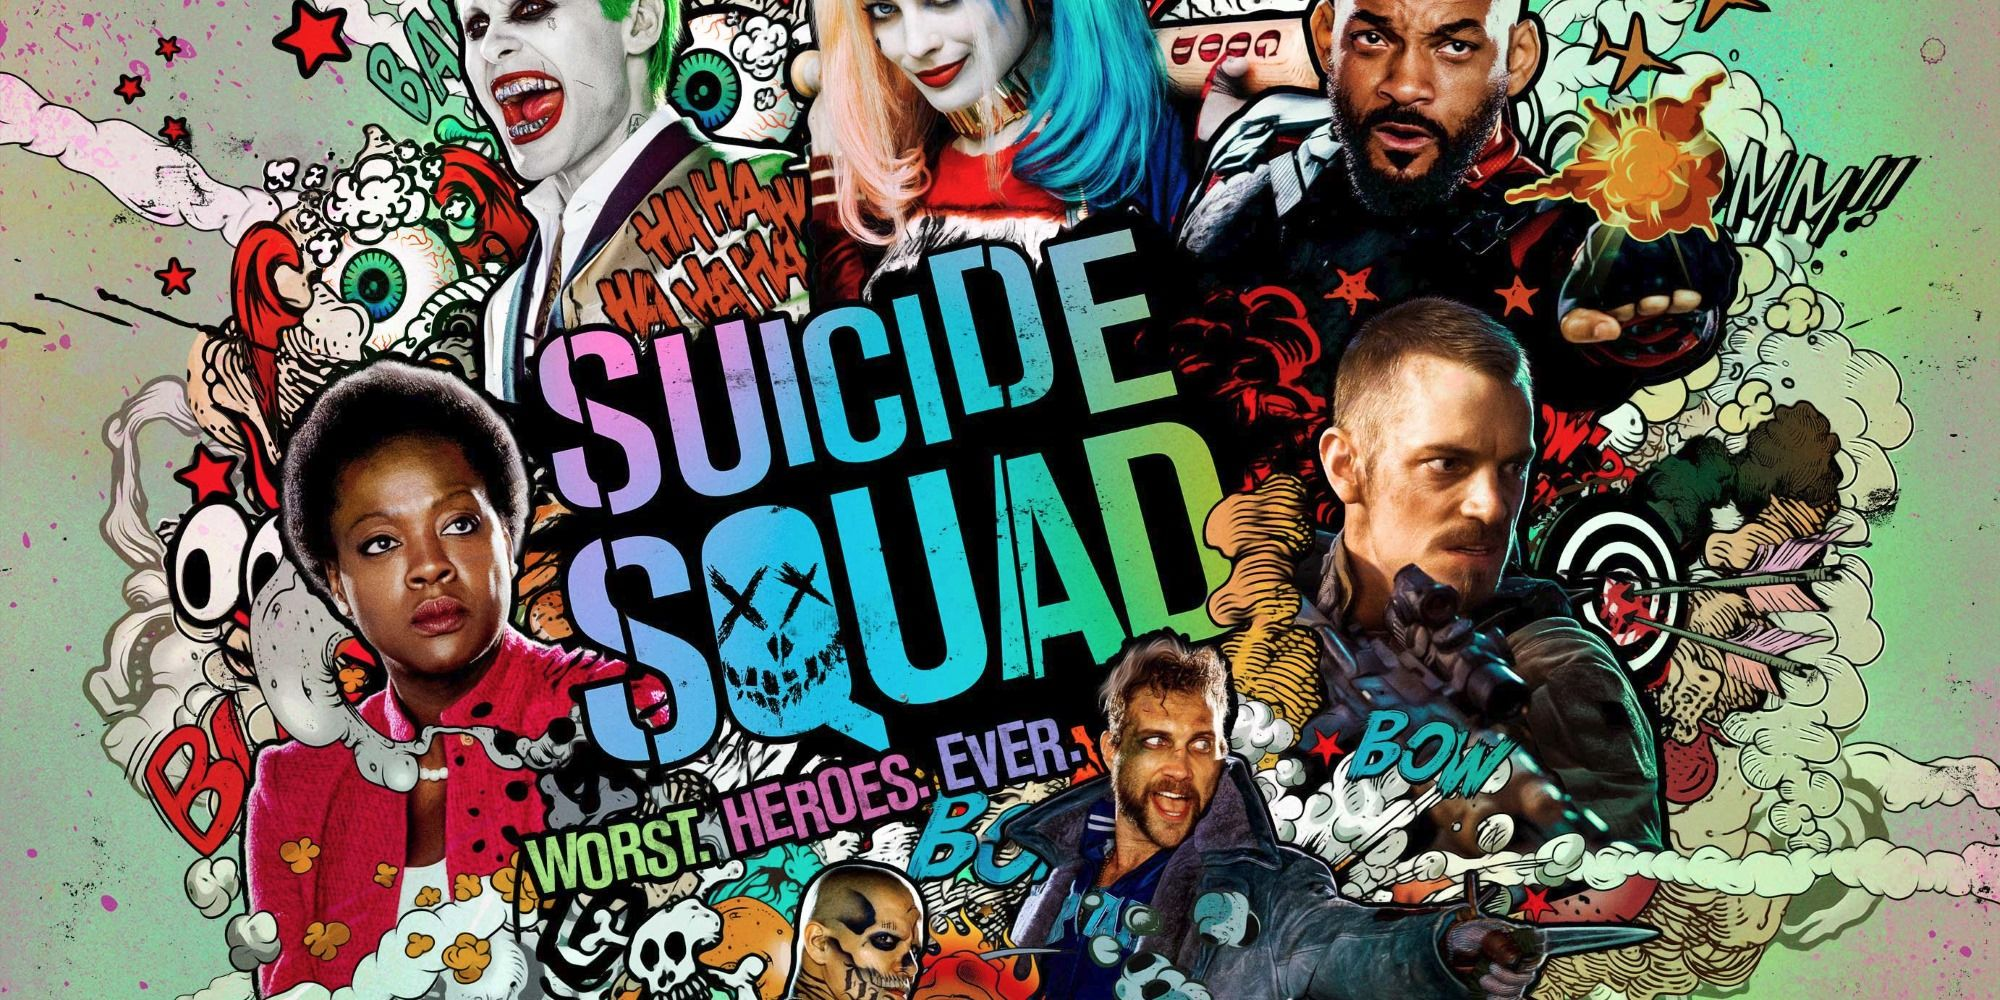 Squad goal # 1: Not being as lame as the Suicide Squad